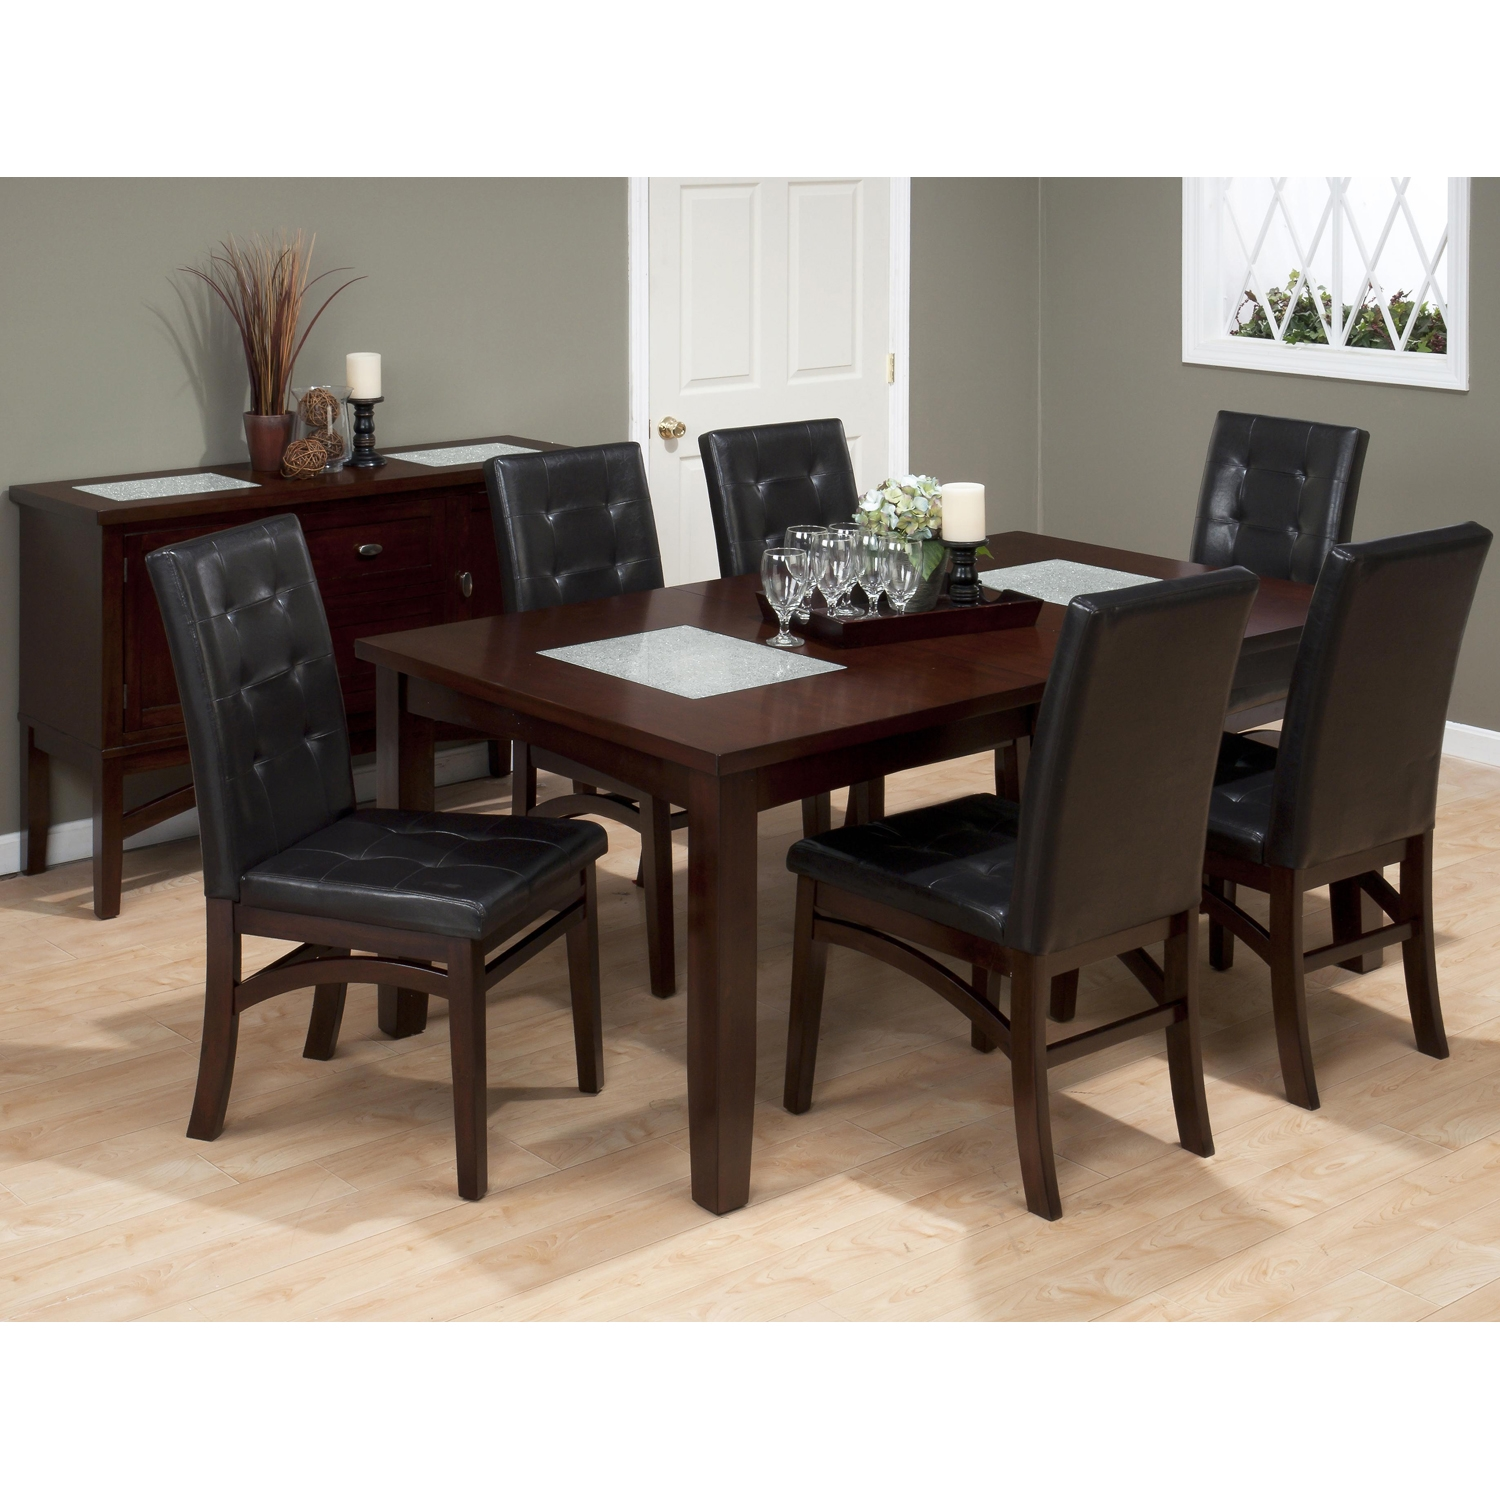 Chadwick Dining Chair - Faux Leather, Tufted Back, Espresso - JOFR-863-945KD